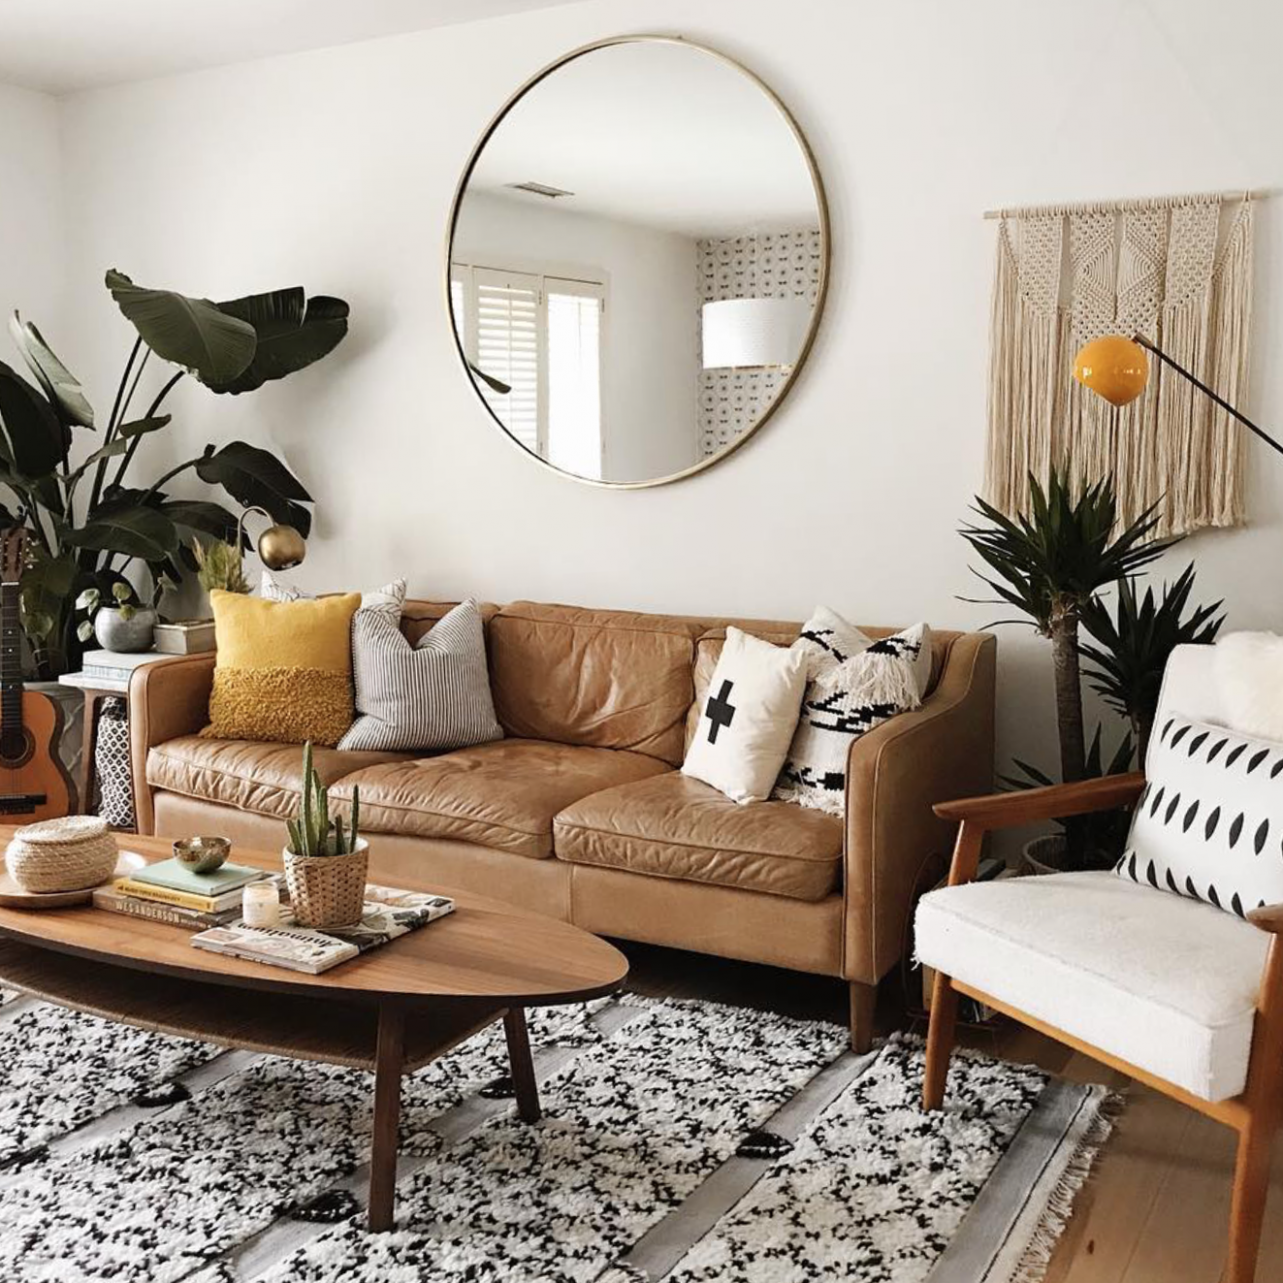 8 Apartment Decorating and Small Living Room Ideas  The Anastasia Co - Simple Apartment Decor Ideas